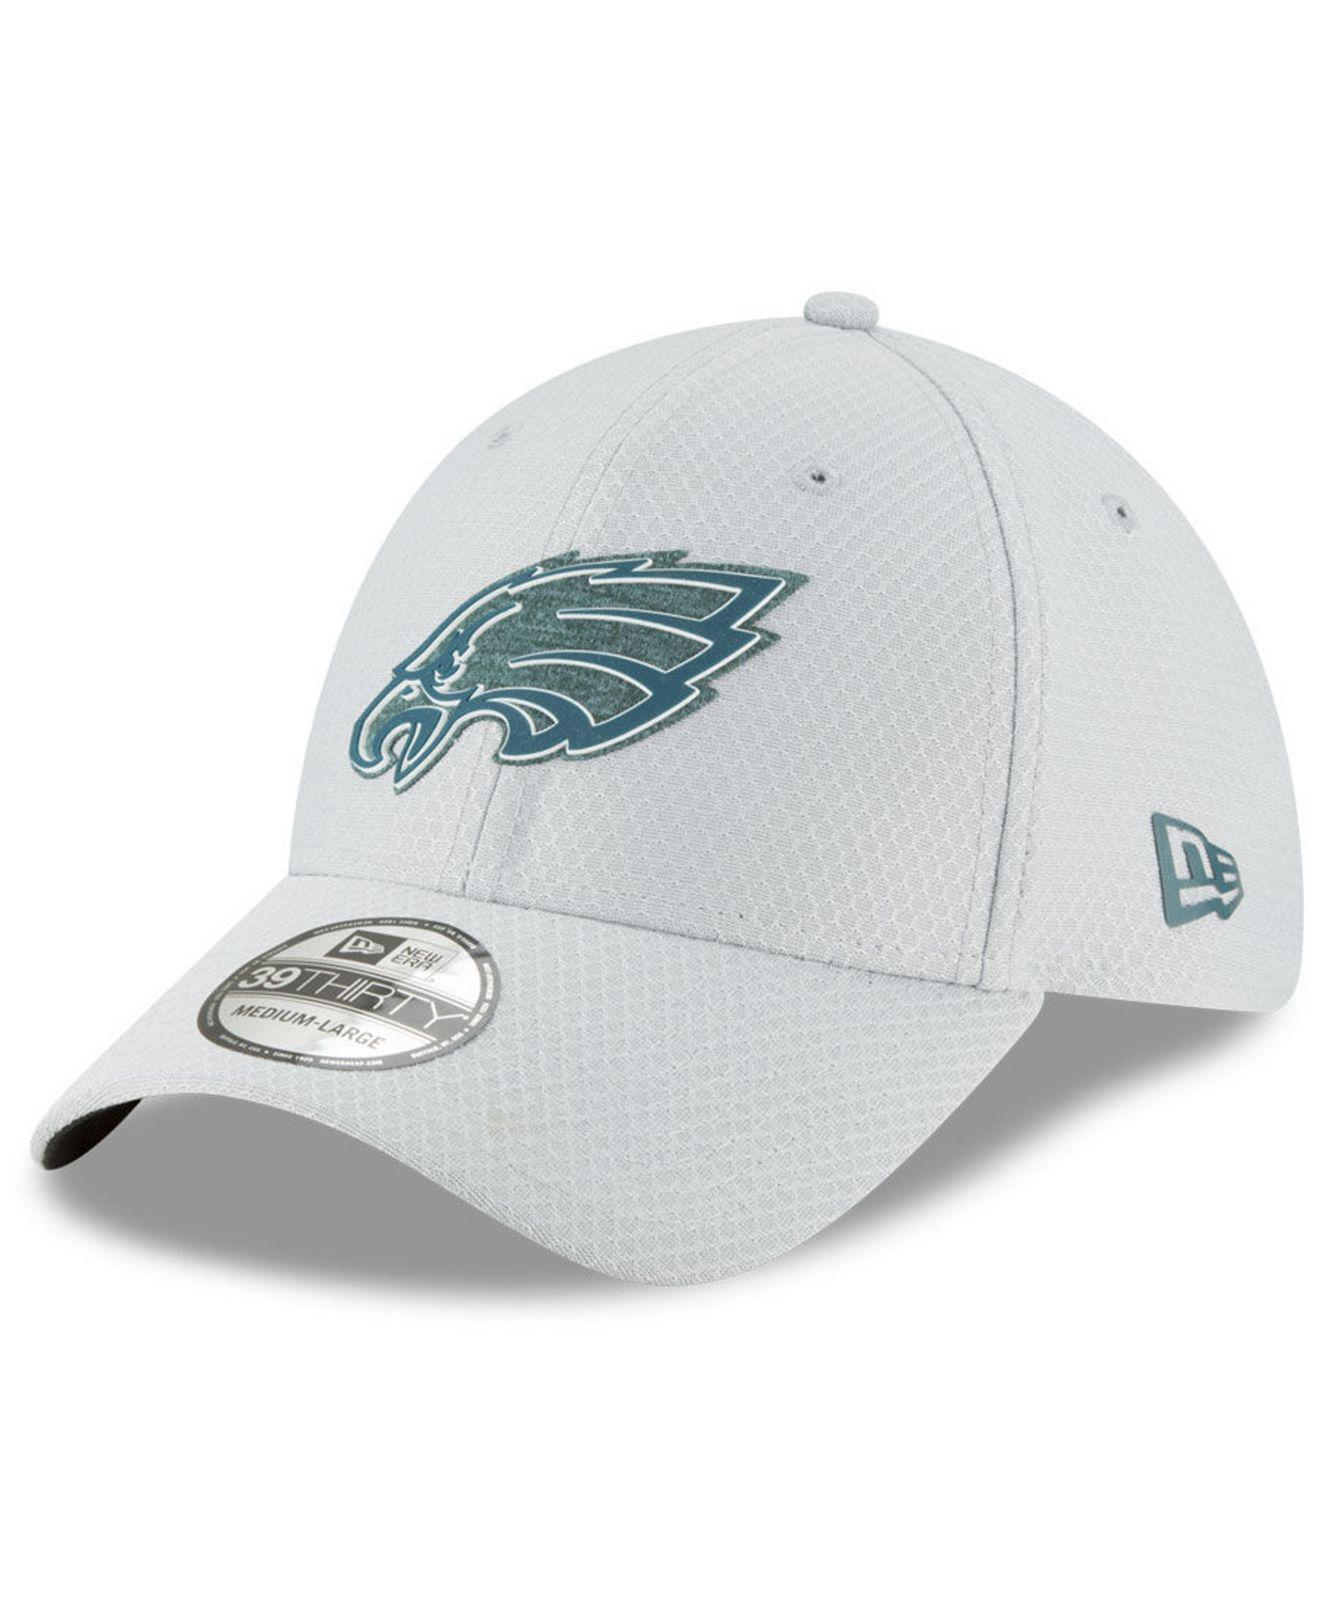 d4b0f6447 Lyst - KTZ Philadelphia Eagles Training 39thirty Cap in Gray for Men